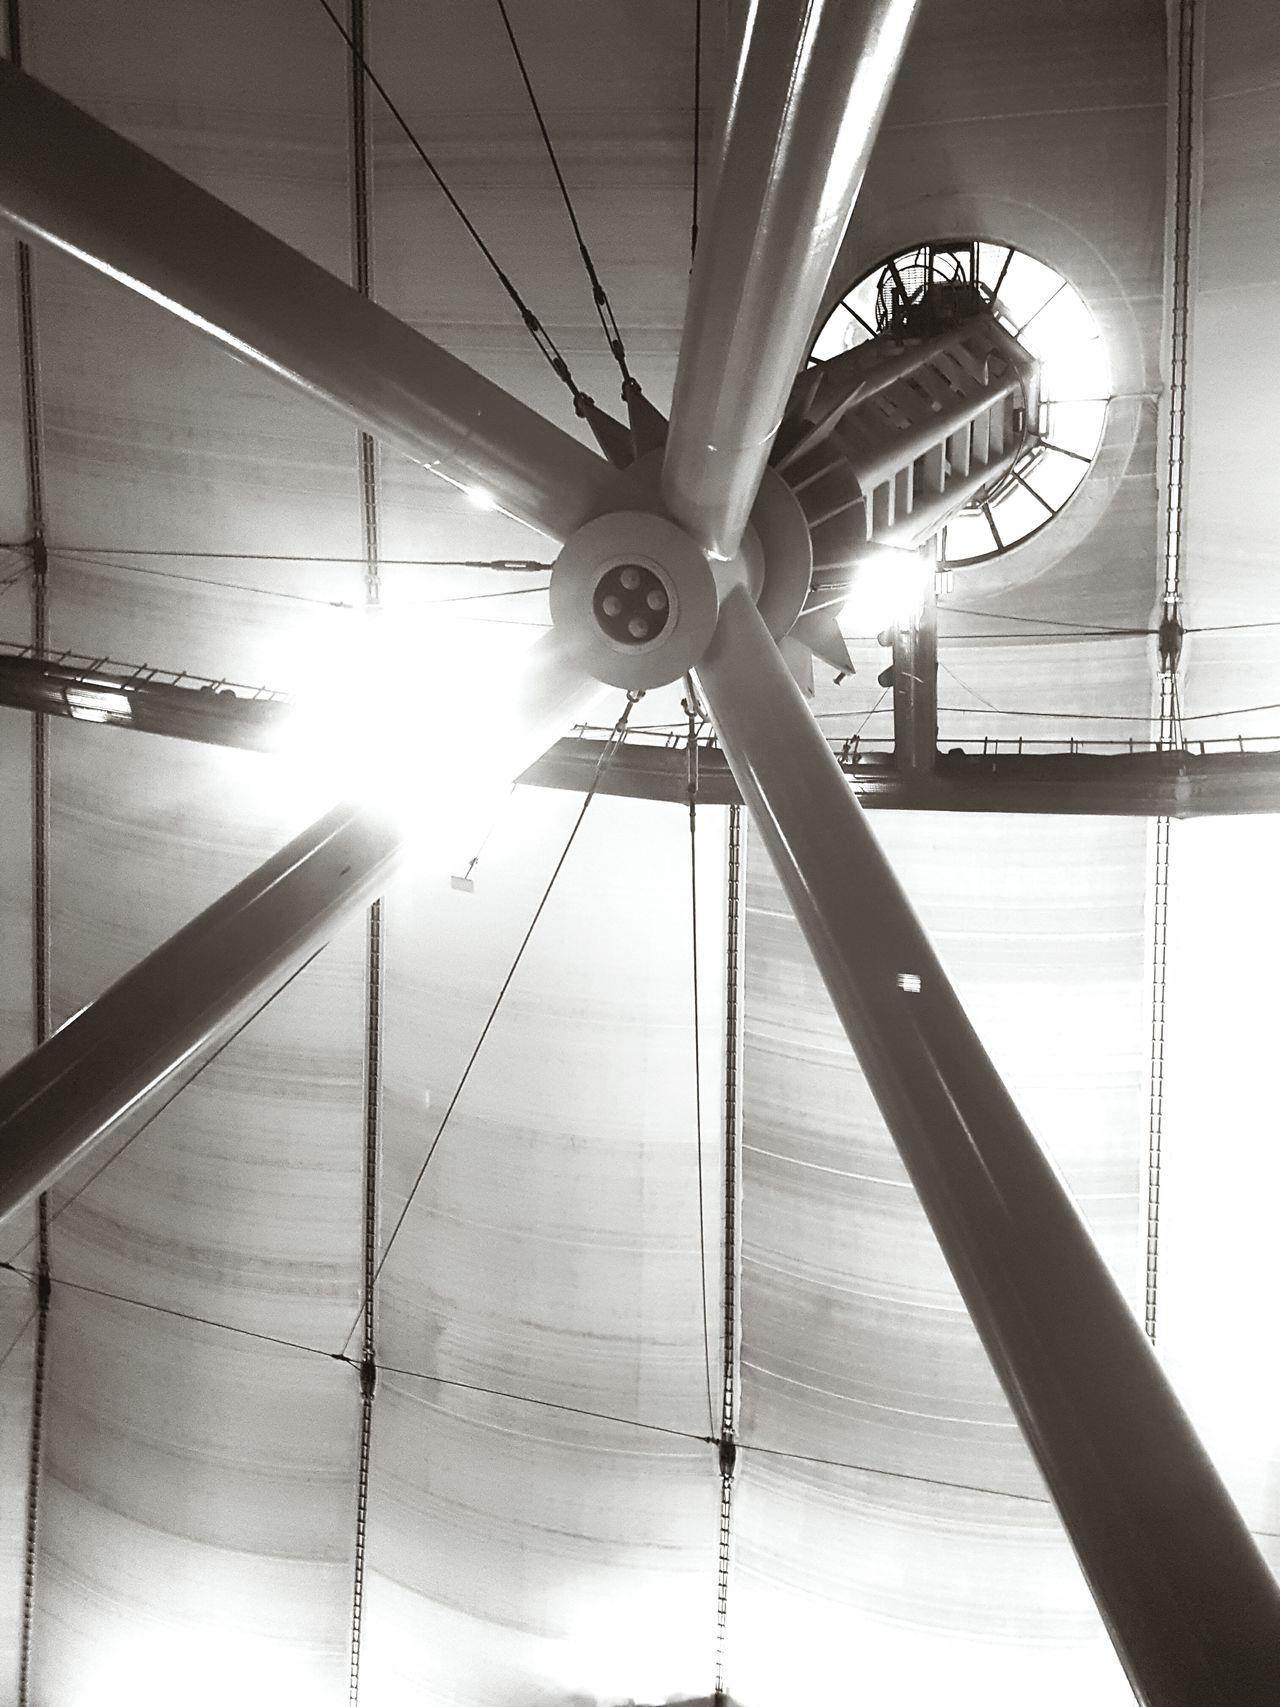 Tetrapodal feature Indoors  Illuminated Low Angle View No People Architecture Day O2 O2 Arena Greenwich SUPPORT Architectural Feature Monochrome Blackandwhite Black & White